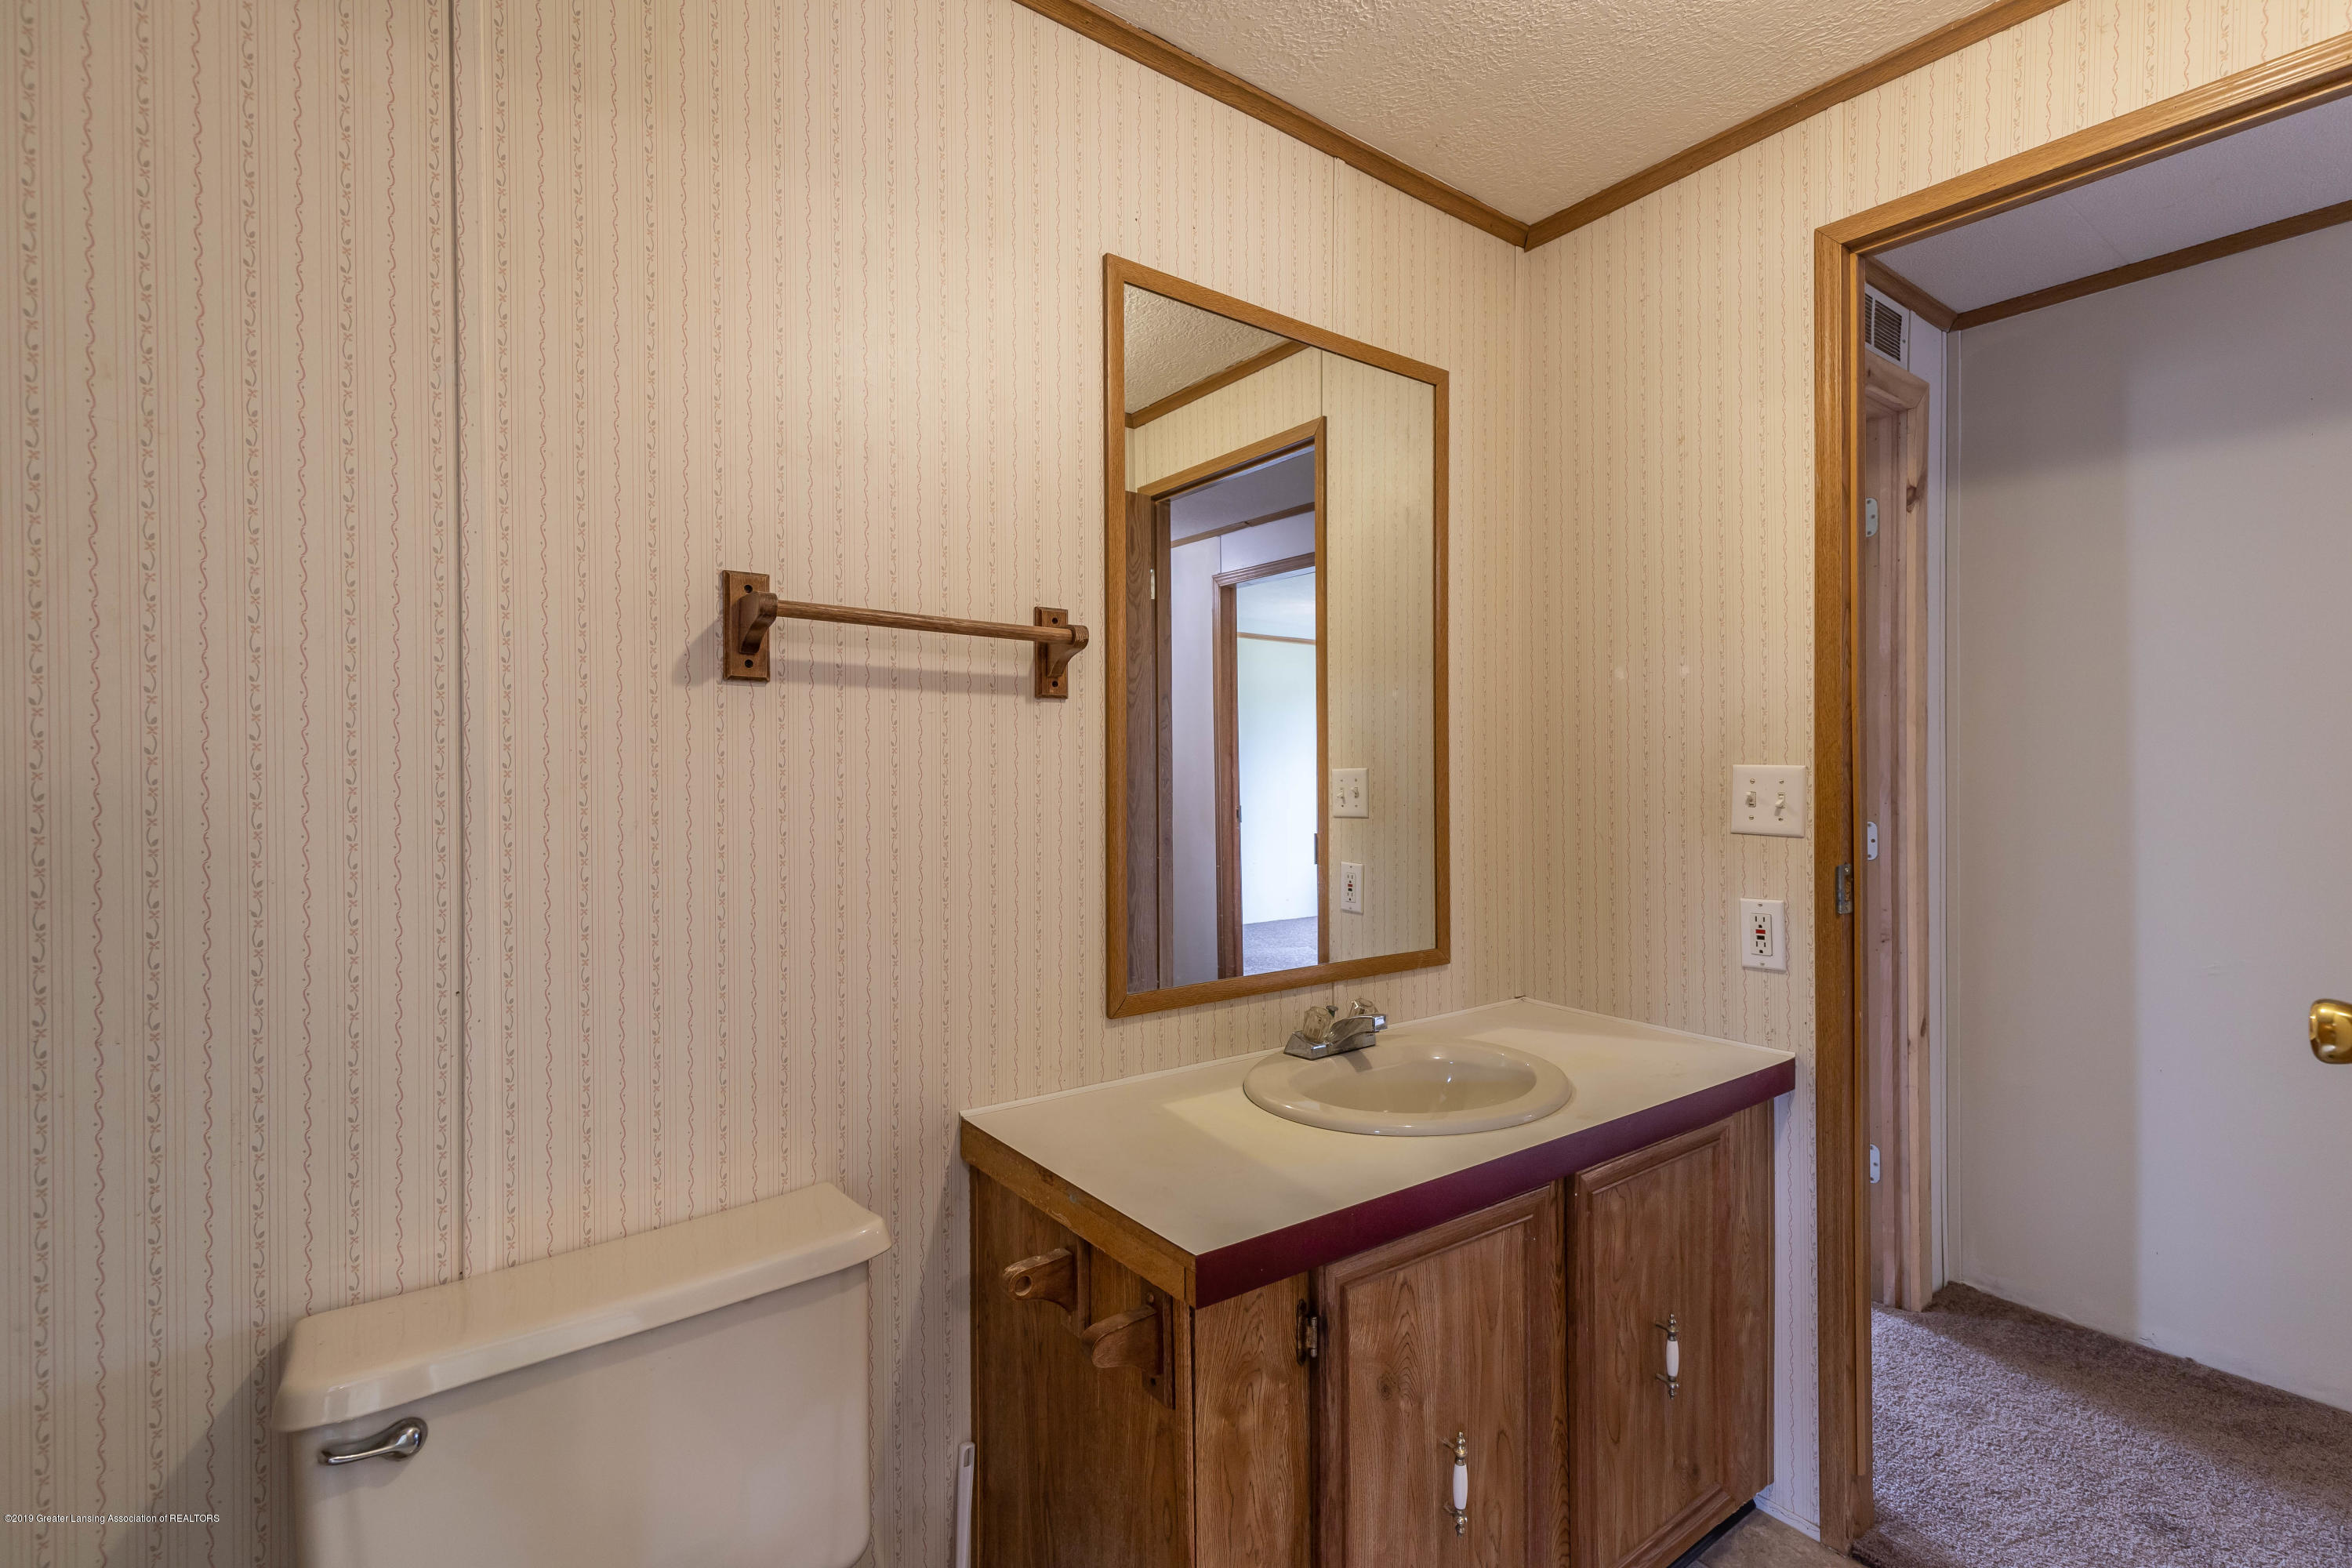 8566 E Spicerville Hwy - spicerbath (1 of 1) - 38